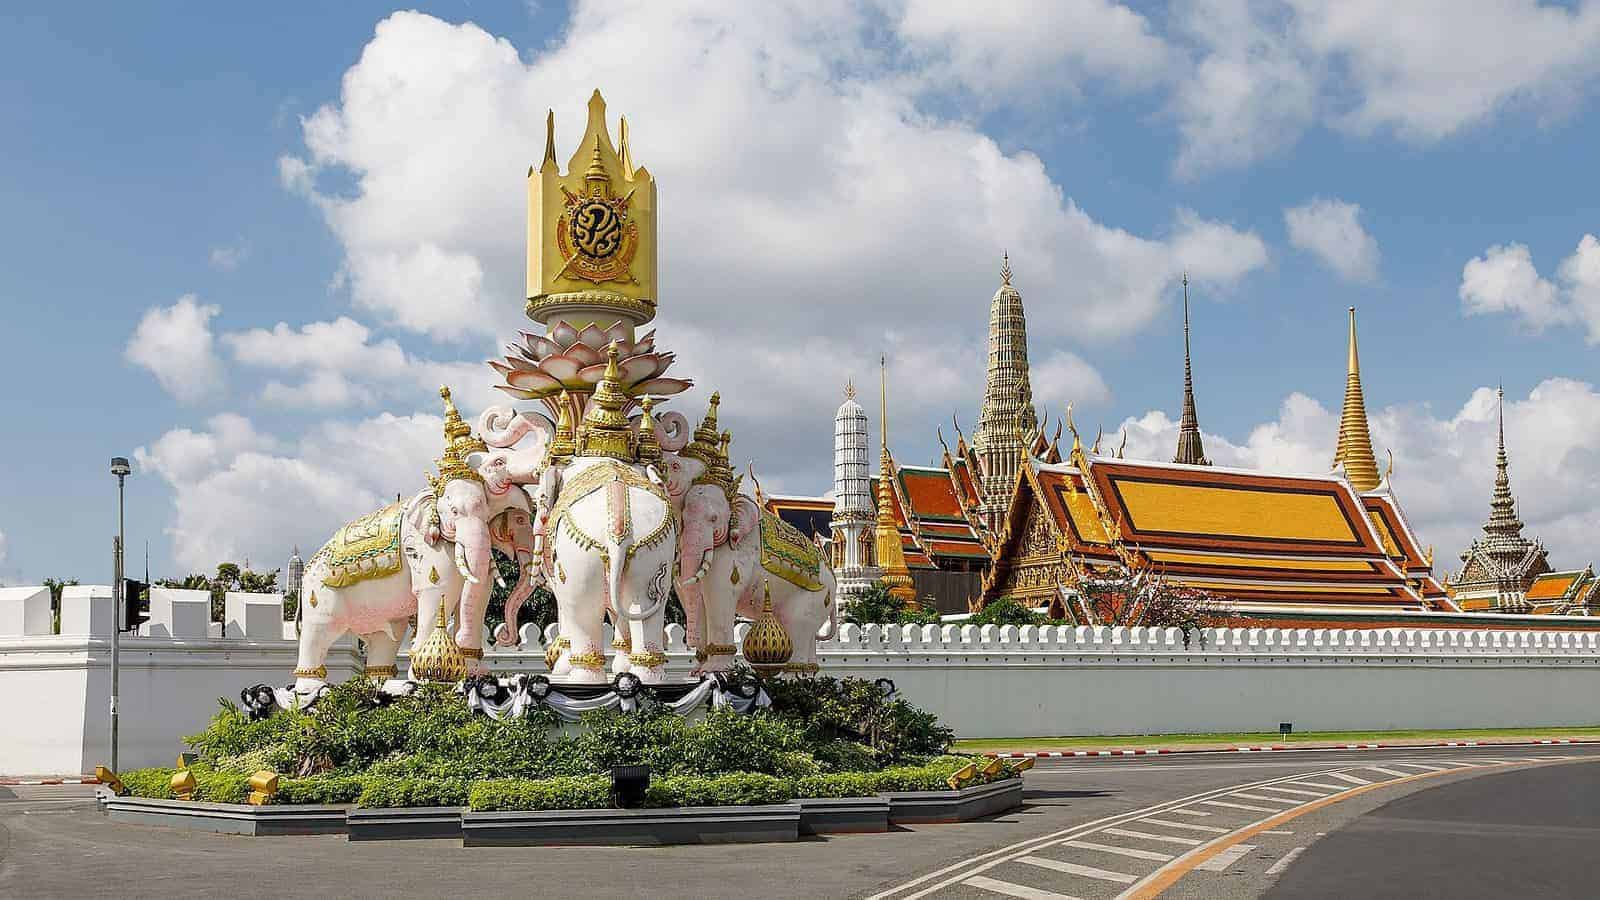 Bangkok is one of the most popular places to visit in Thailand